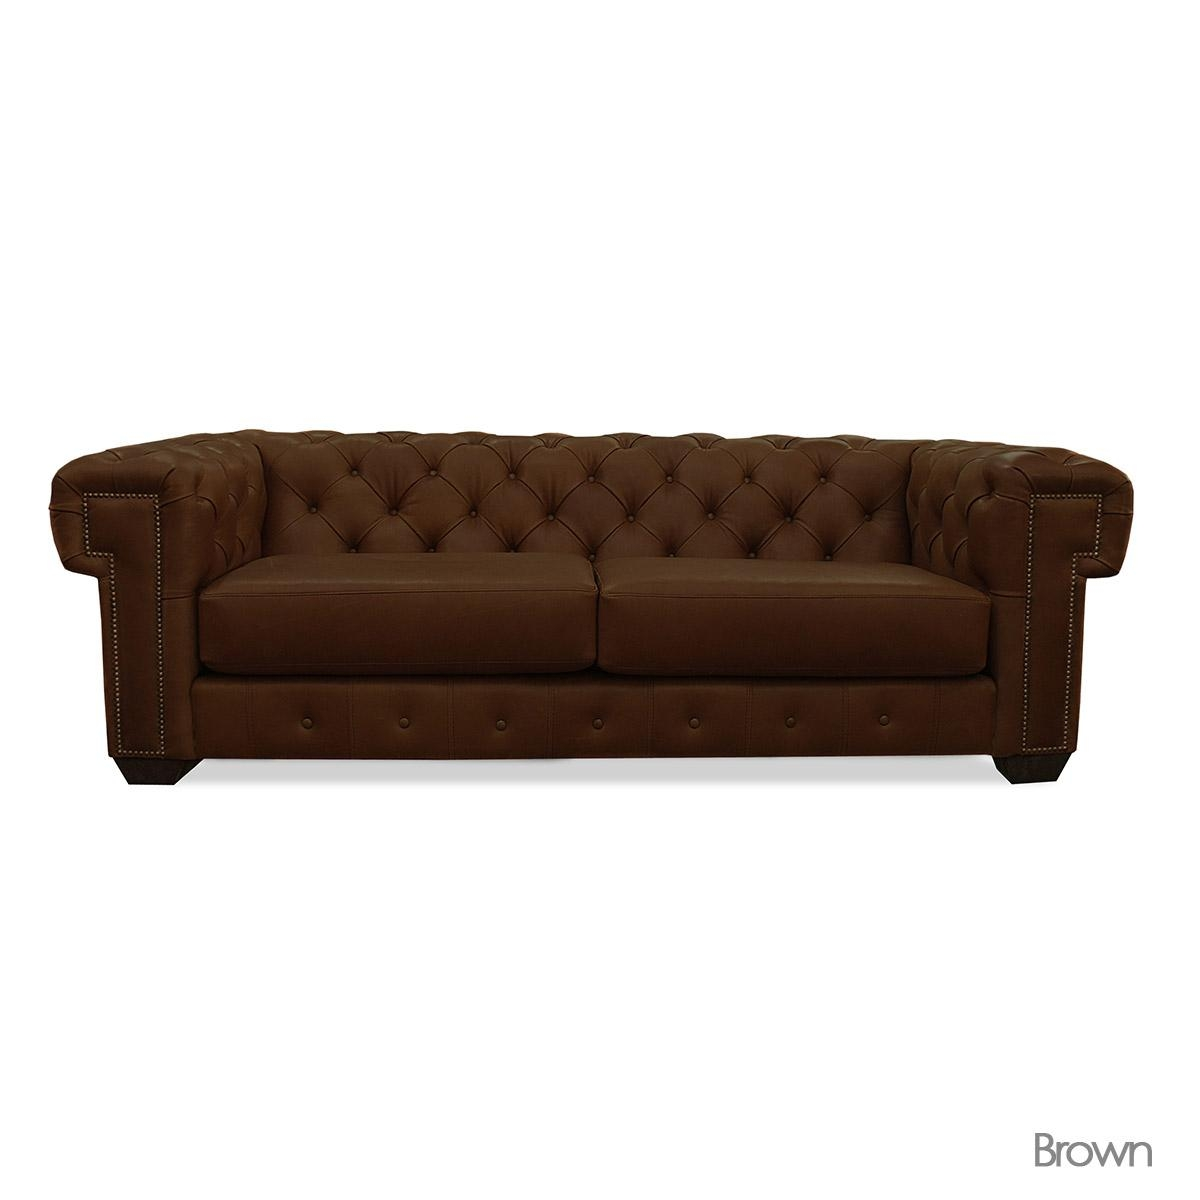 Brown Leather Tufted Sofa With Design Ideas 10493 | Kengire With Brown Tufted Sofas (Image 2 of 20)